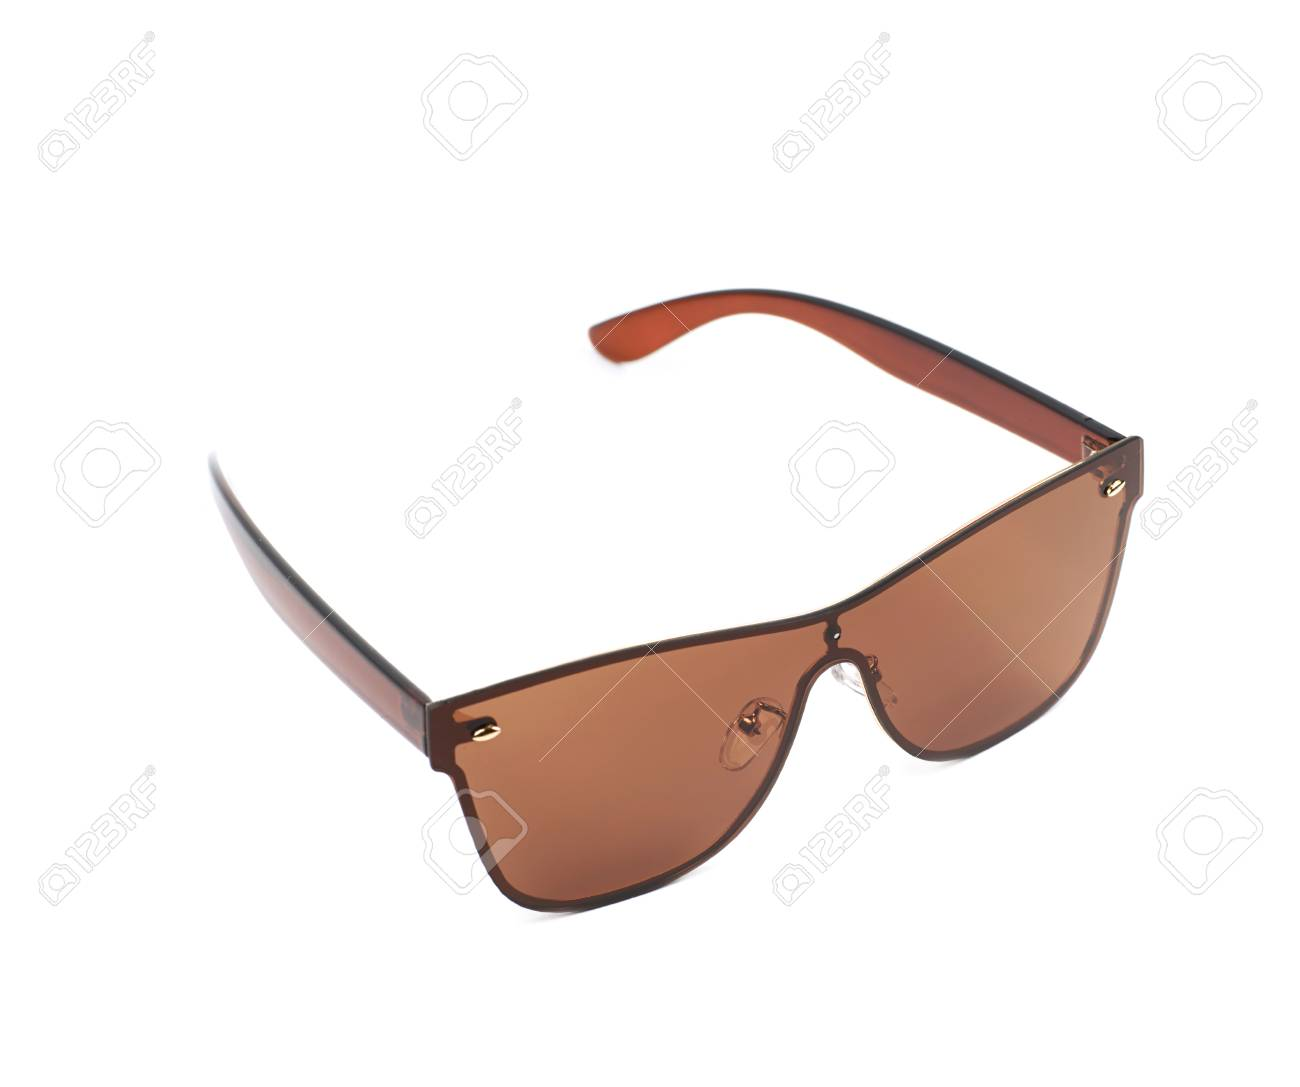 4d94065655c Pair of brown shade sunglasses isolated over the white background Stock  Photo - 59653179